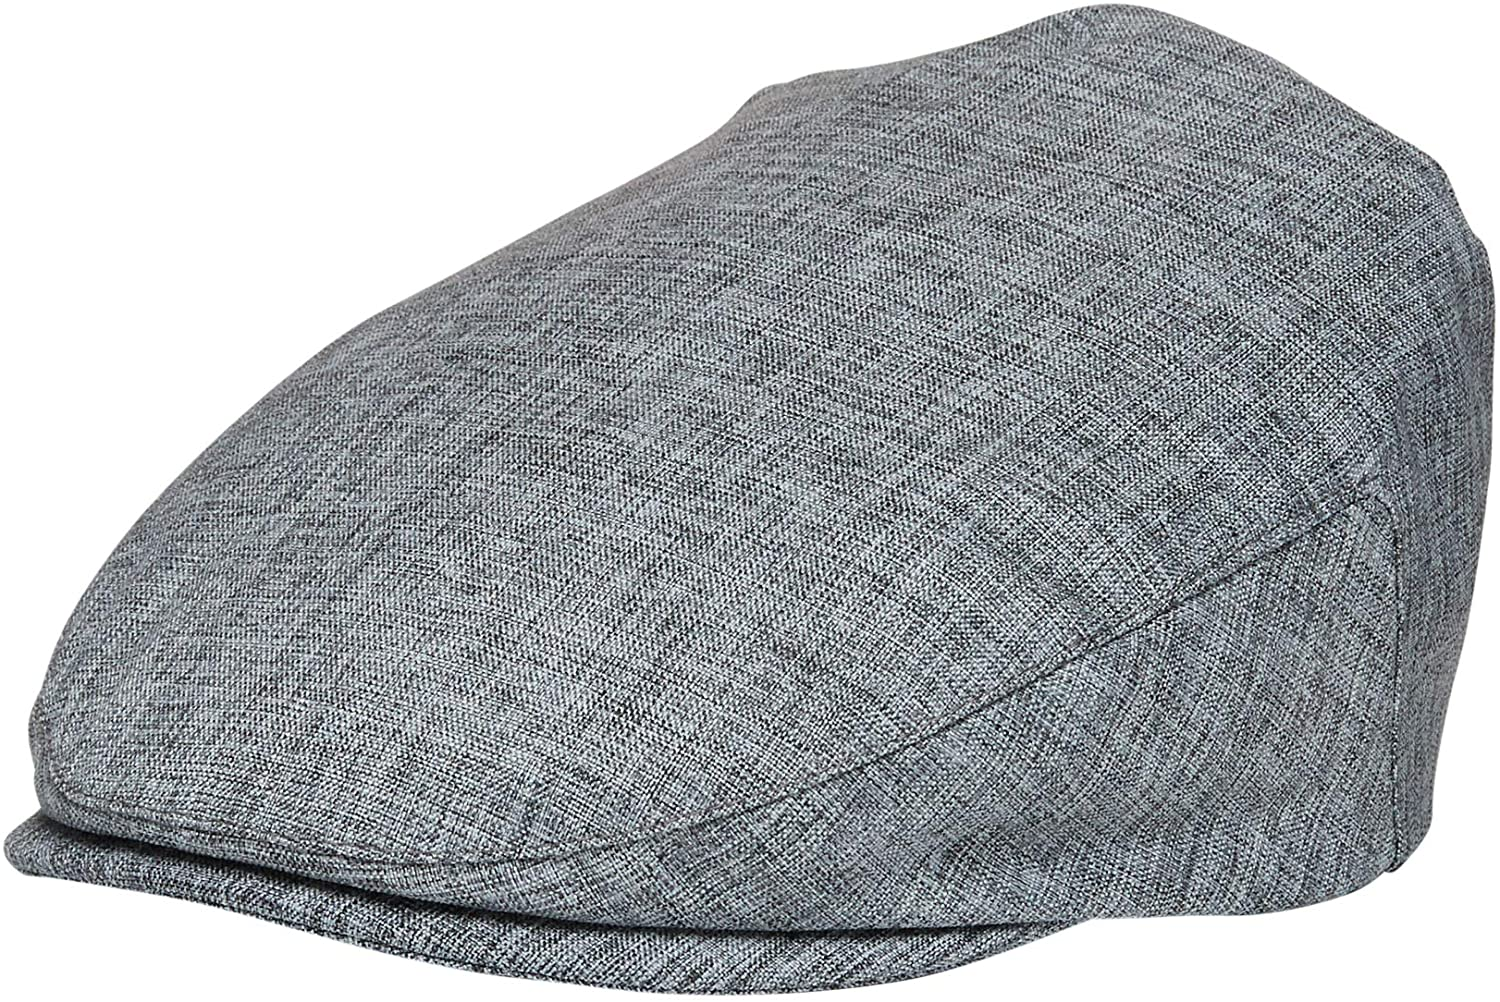 Born to Love Baby Boys Gray Driver Cap XXL 58cm 8 yrs up, Gray